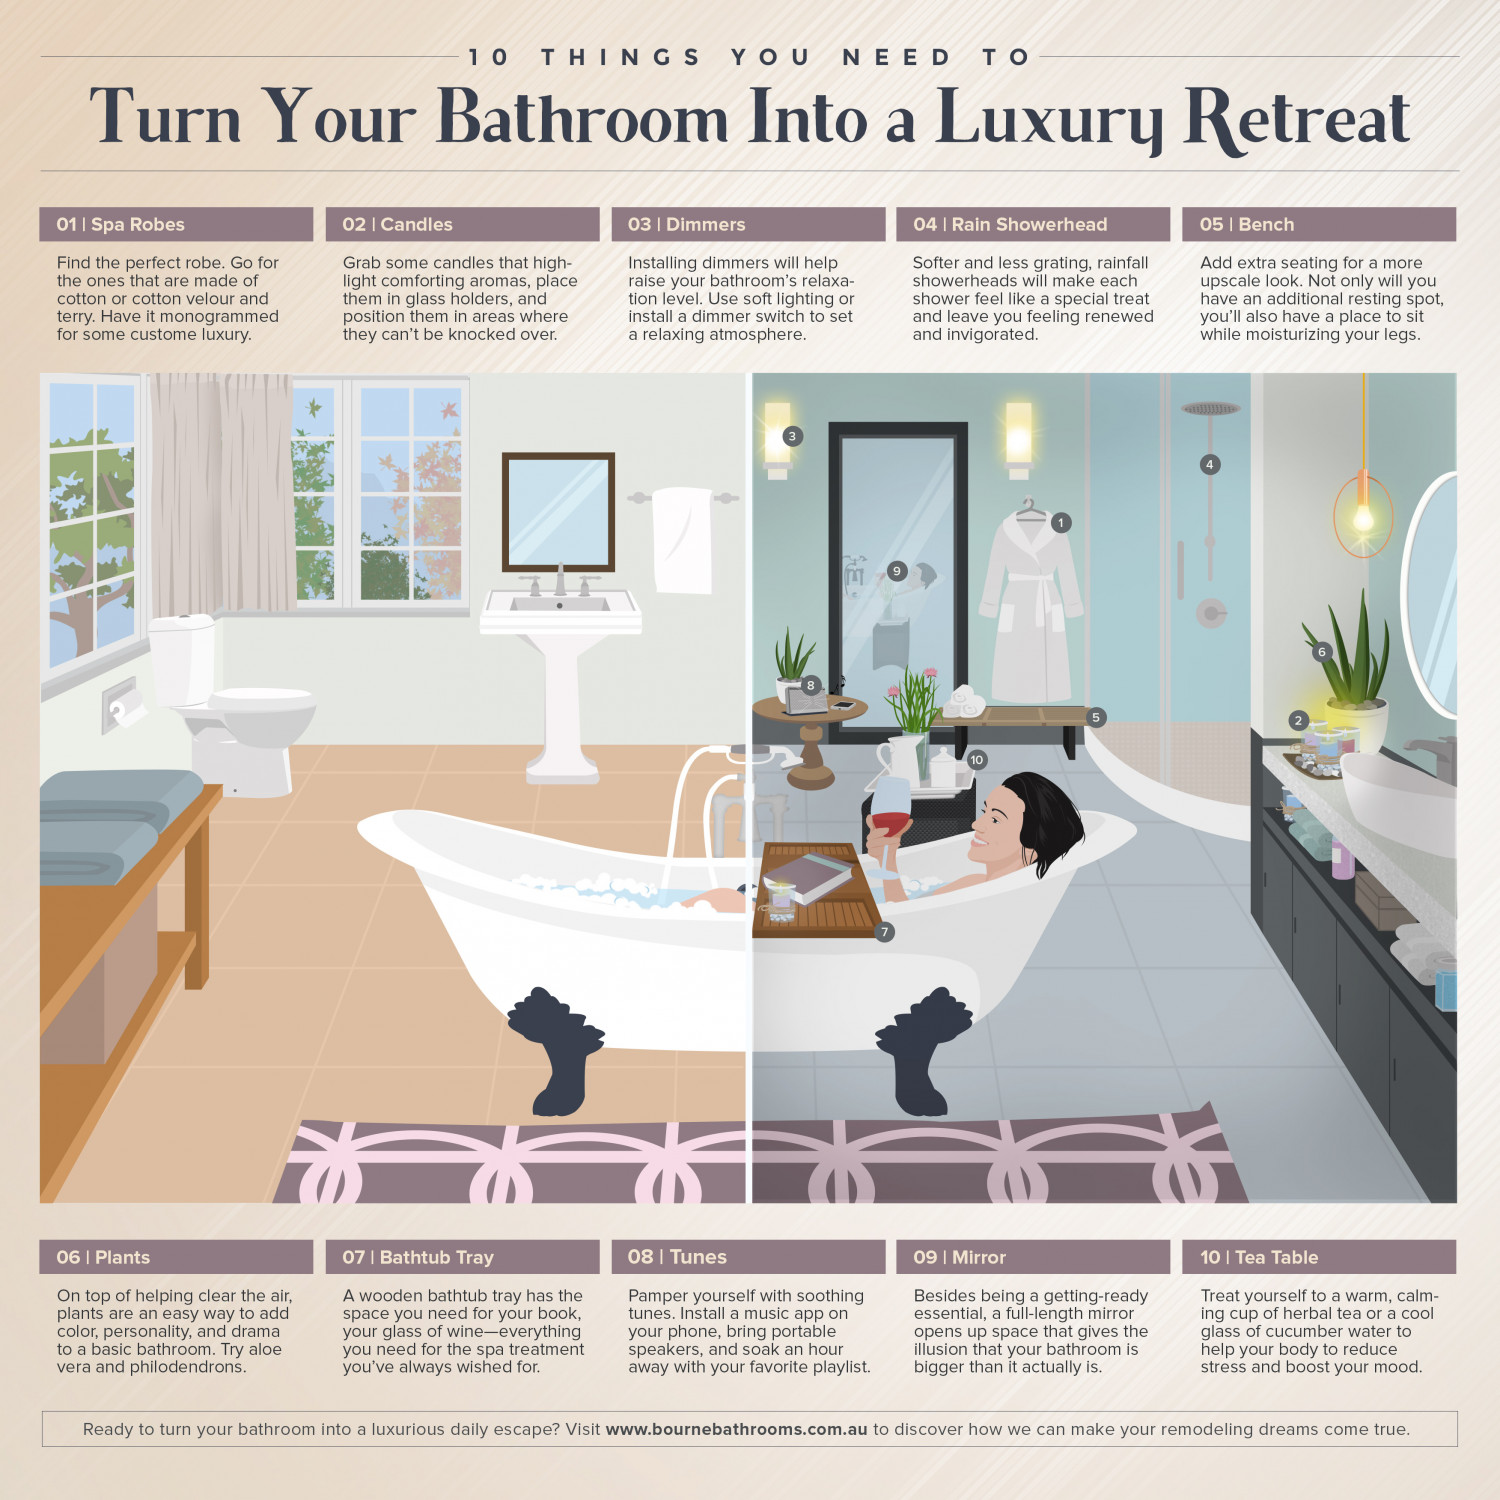 10 Things You Need To Turn Your Bathroom Into A Luxury Retreat